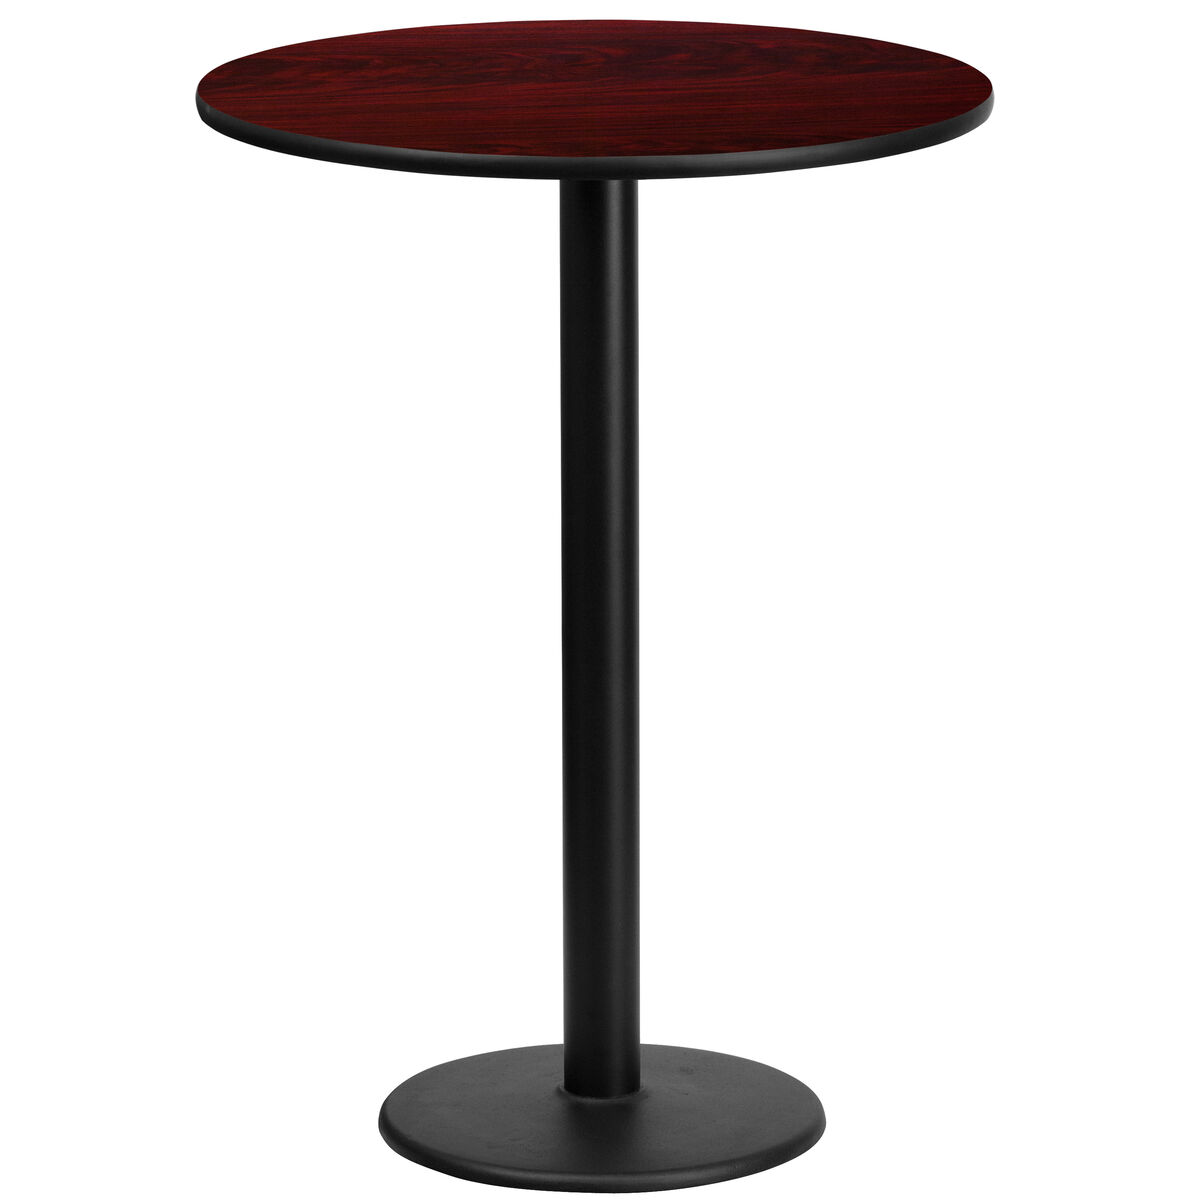 Standard Furniture Cosmo Adjustable Height Round Wood Top: T & D Restaurant Equipment 24'' Round Mahogany Laminate